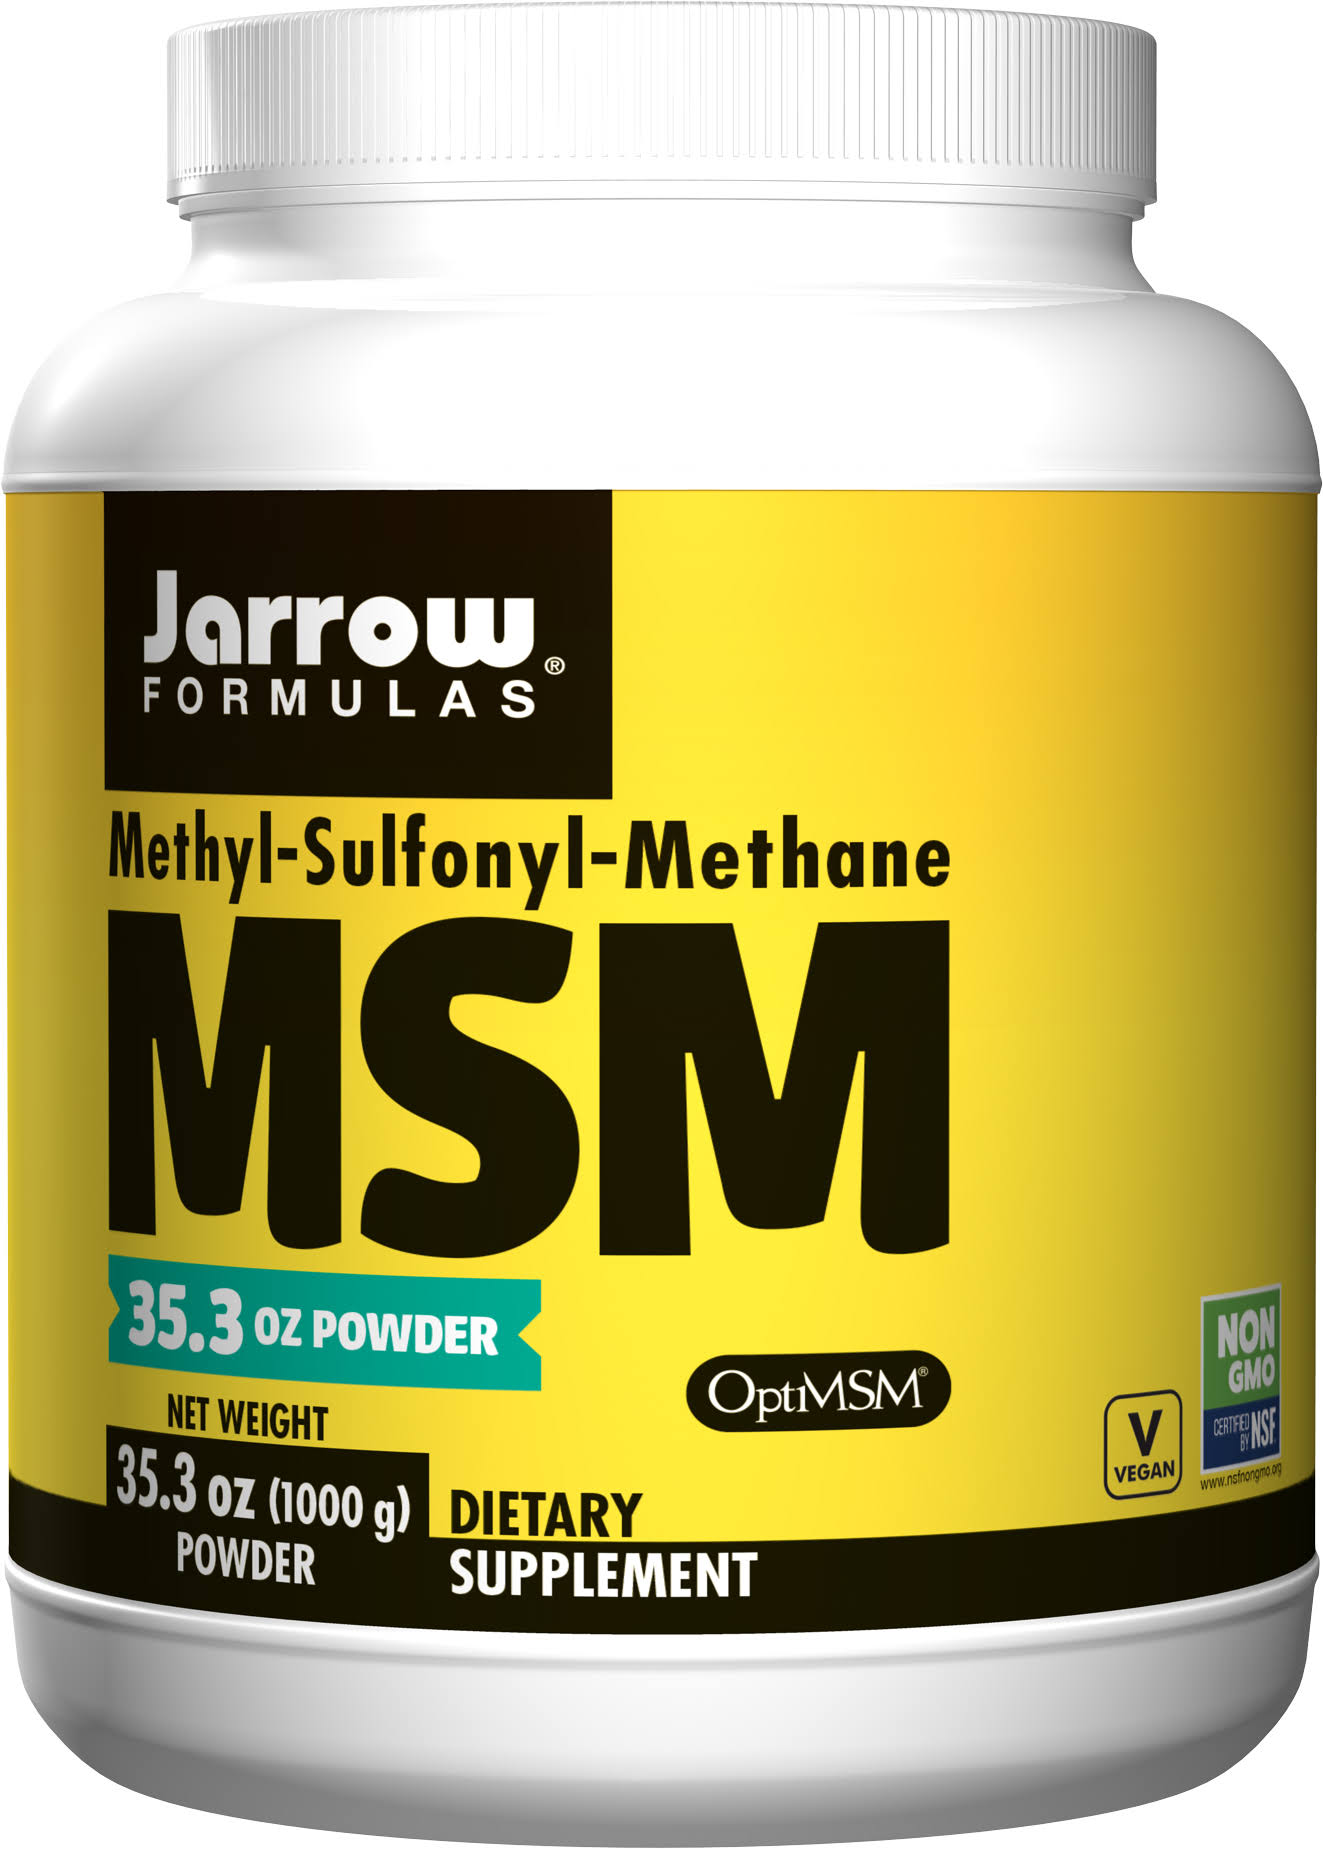 Jarrow Formulas Msm Sulfur Powder - 1000g